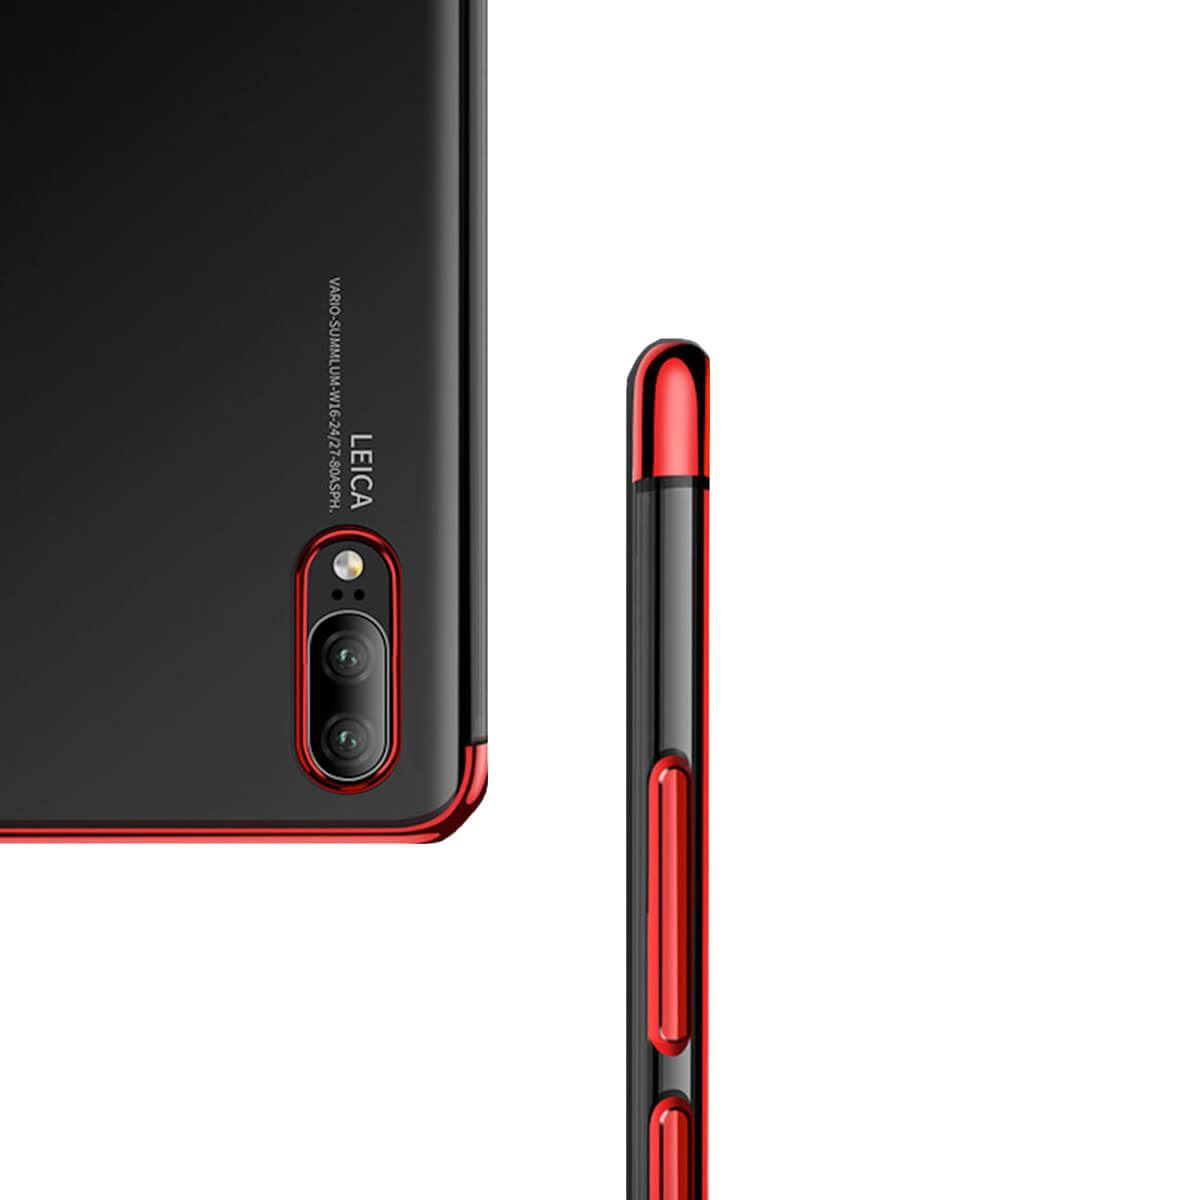 Case-For-Huawei-P20-Pro-P-Smart-Stylish-Hybrid-Shockproof-Plating-Silicone-Cover thumbnail 3